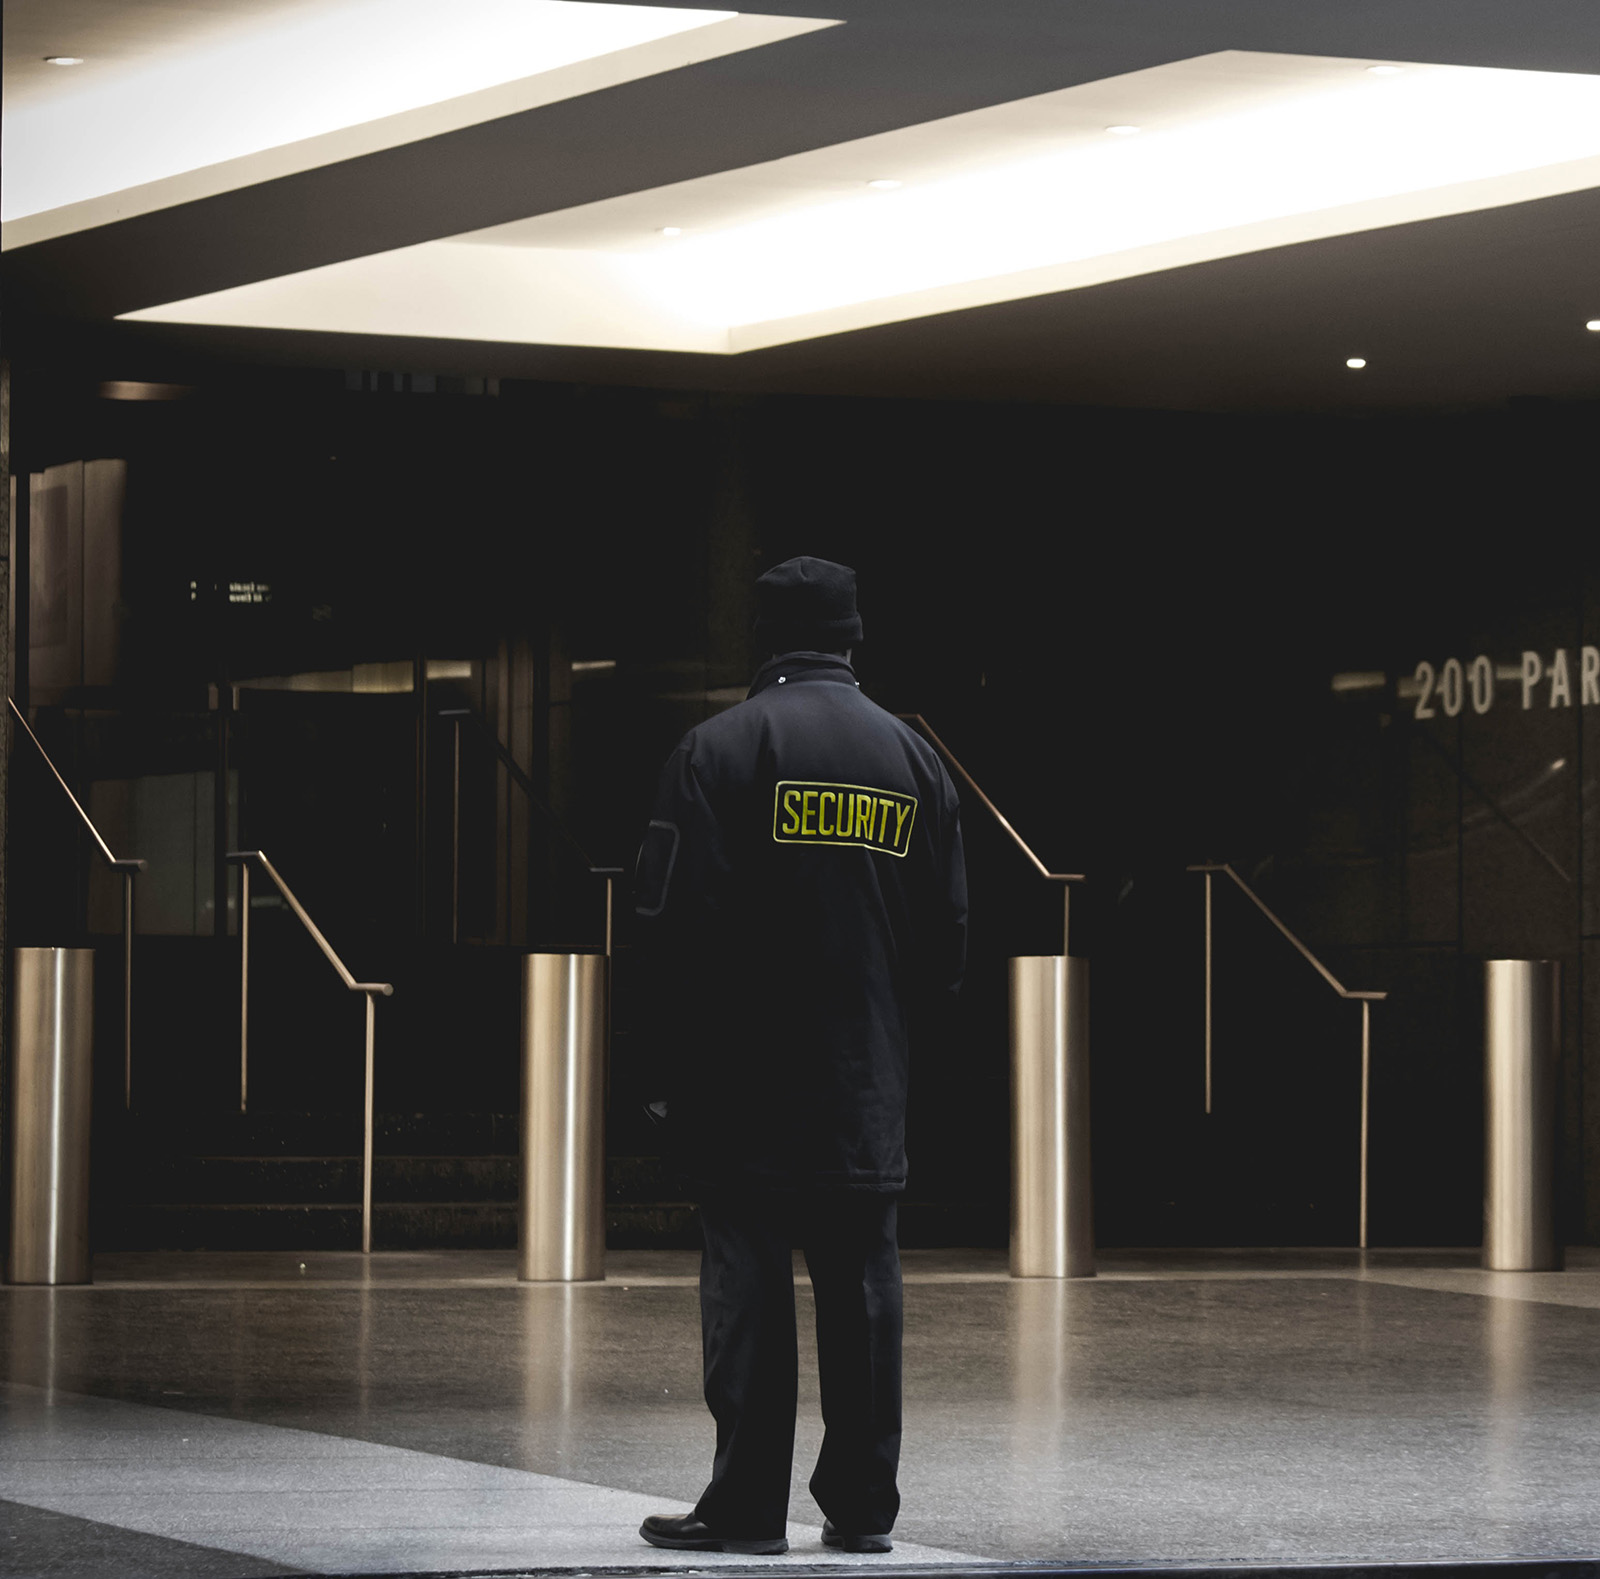 Security guarding main entrance of building